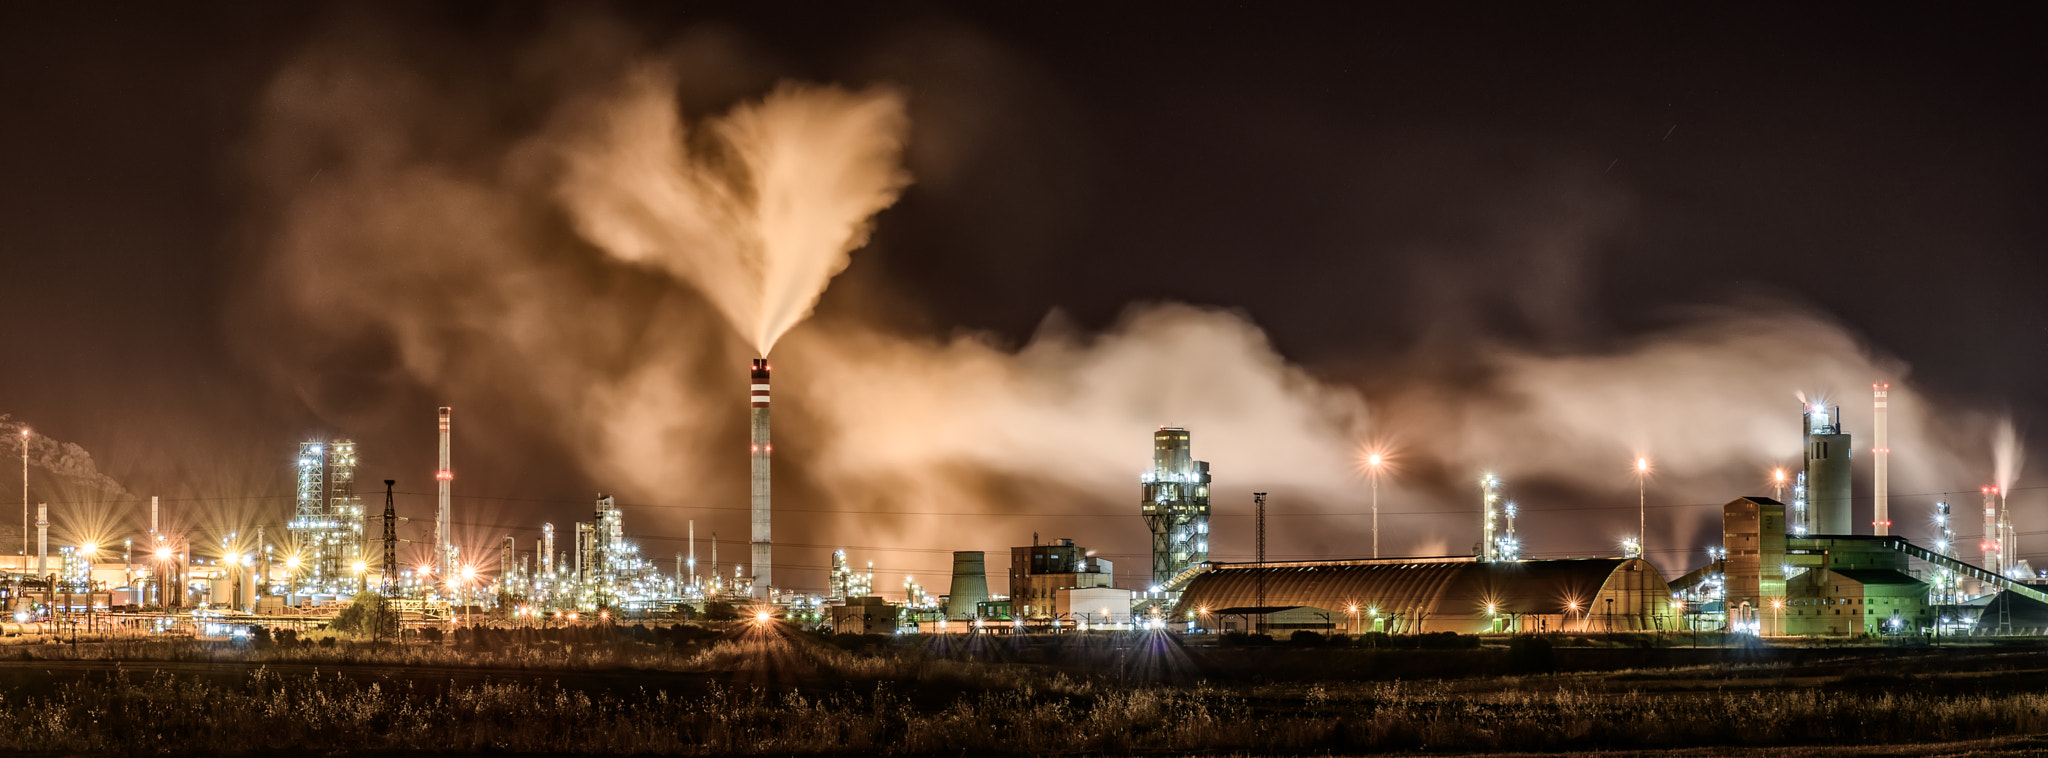 Photograph Puertollano Refinery by Carlos Javier Teruel Galvez on 500px